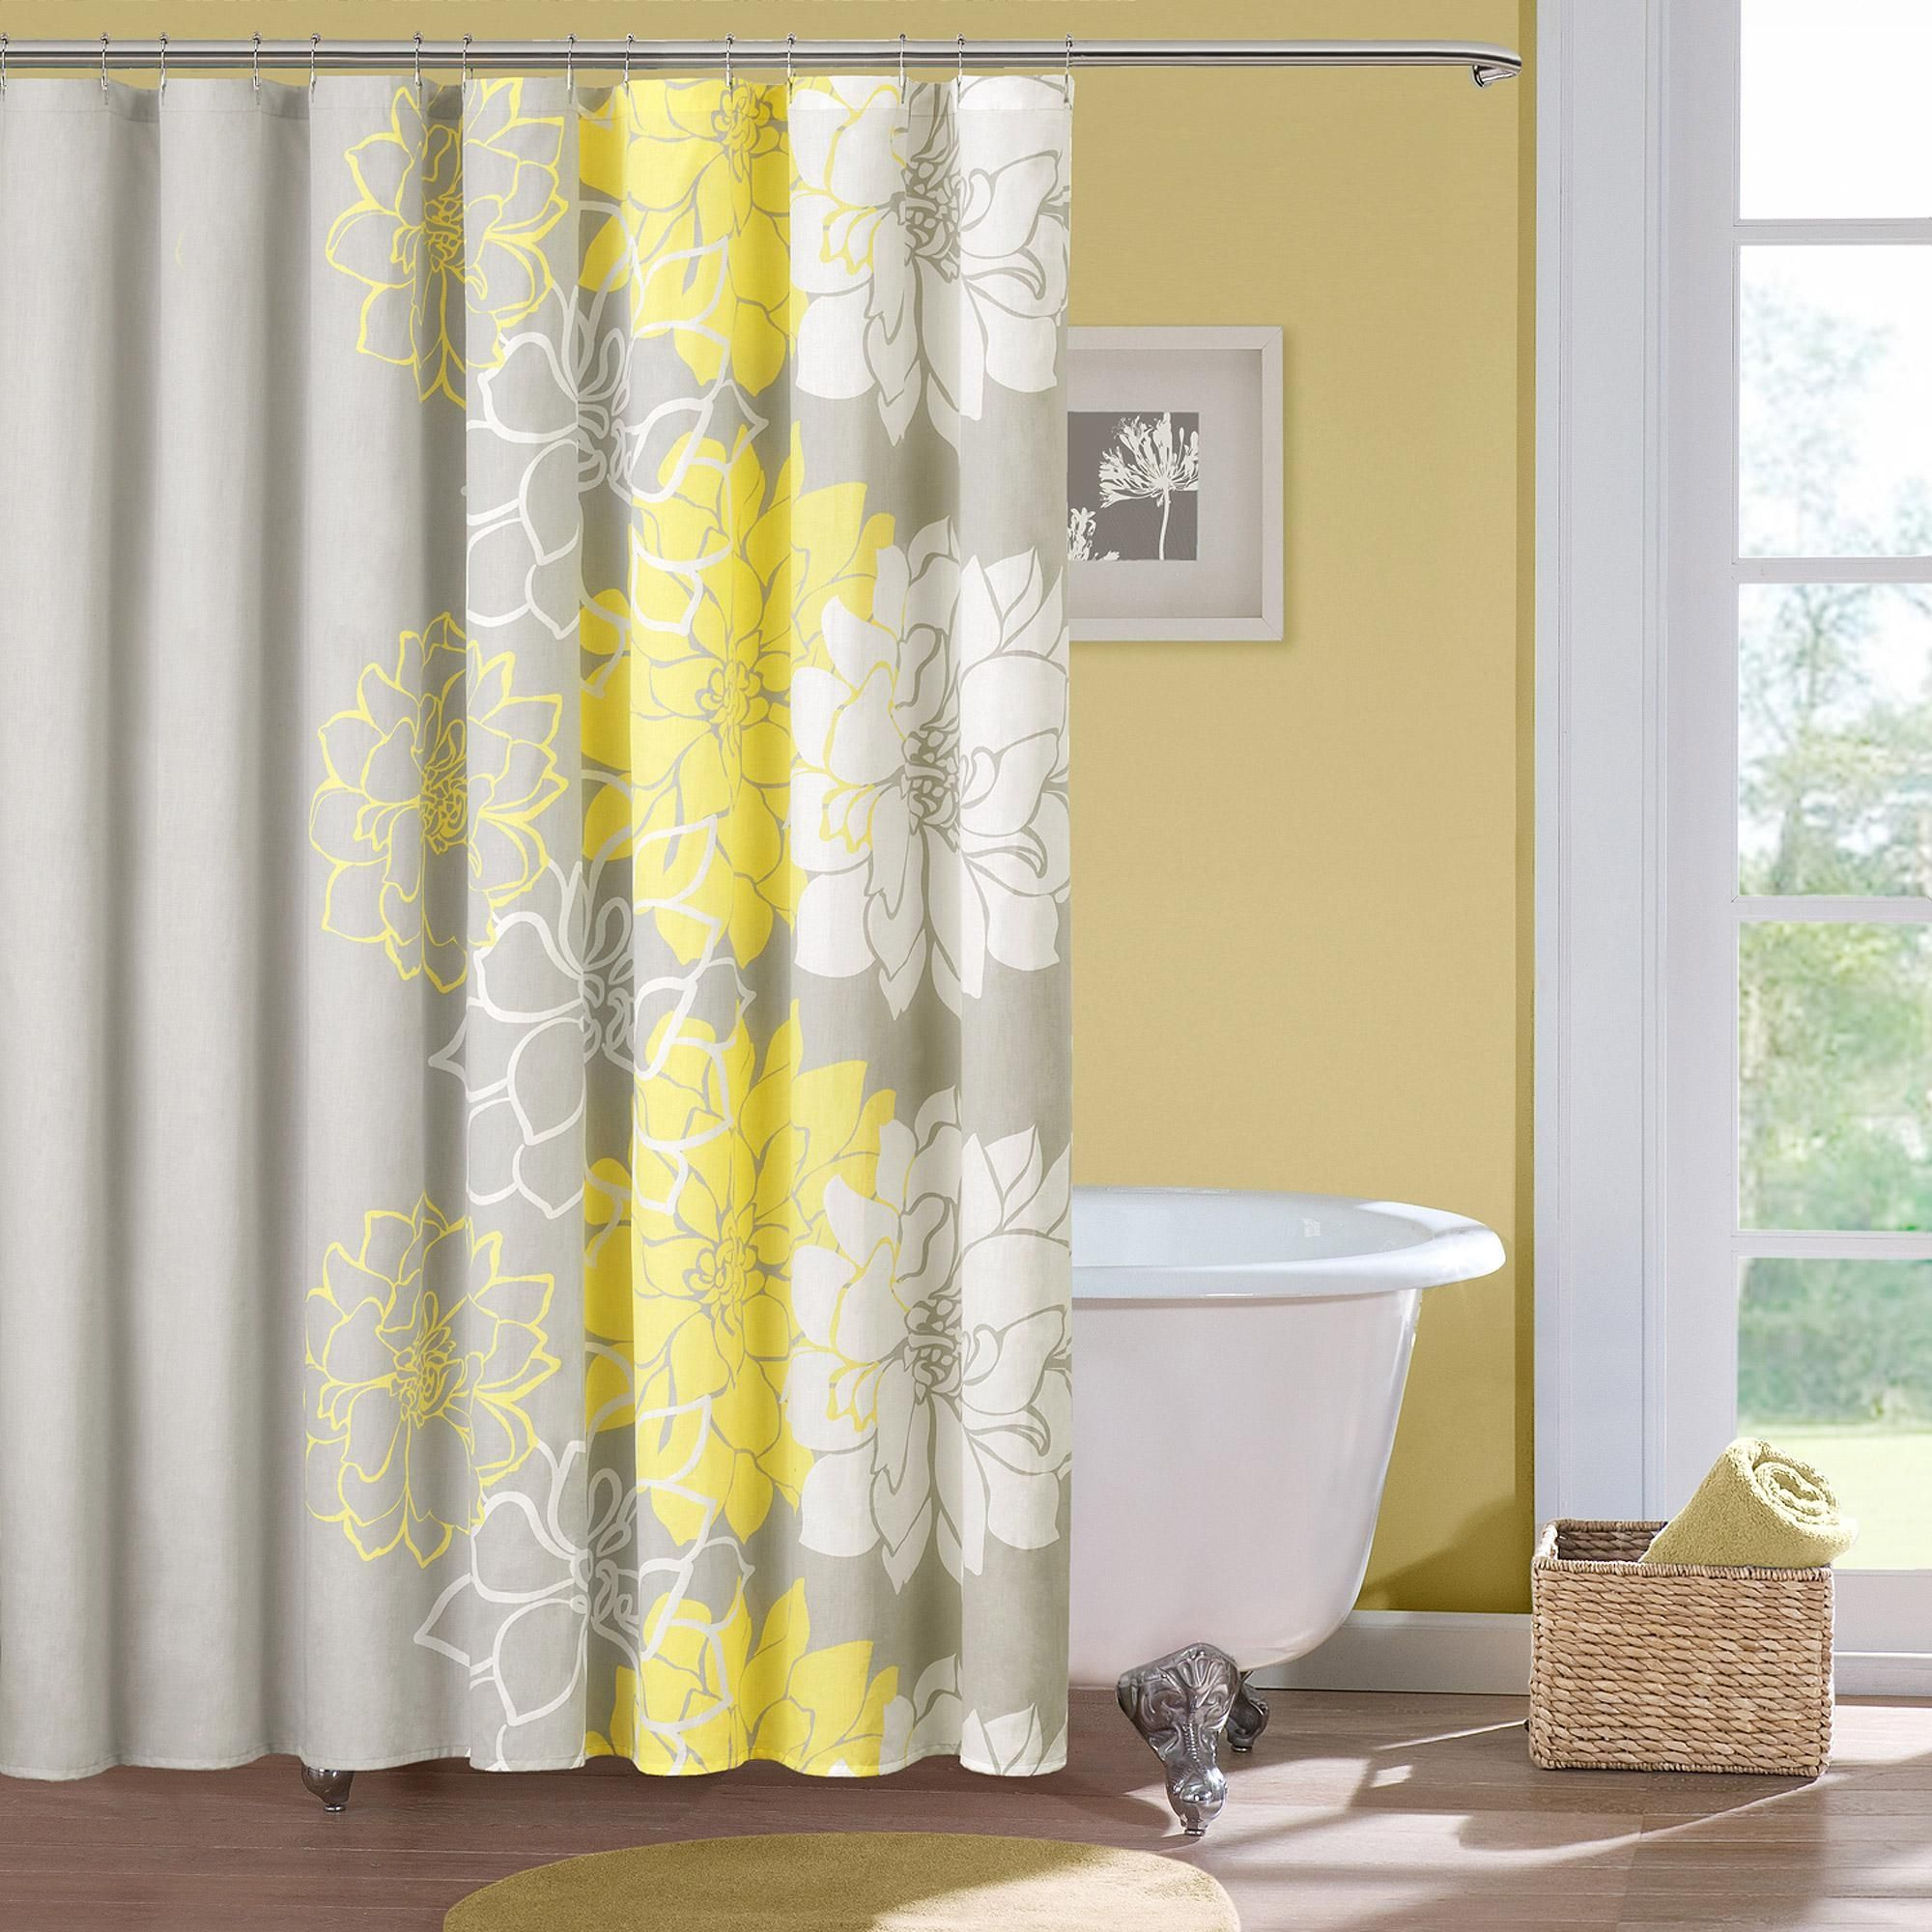 Slot top voile pair olive cheap green curtain voile uk delivery - Navy Blue And Yellow Floral Shower Curtain